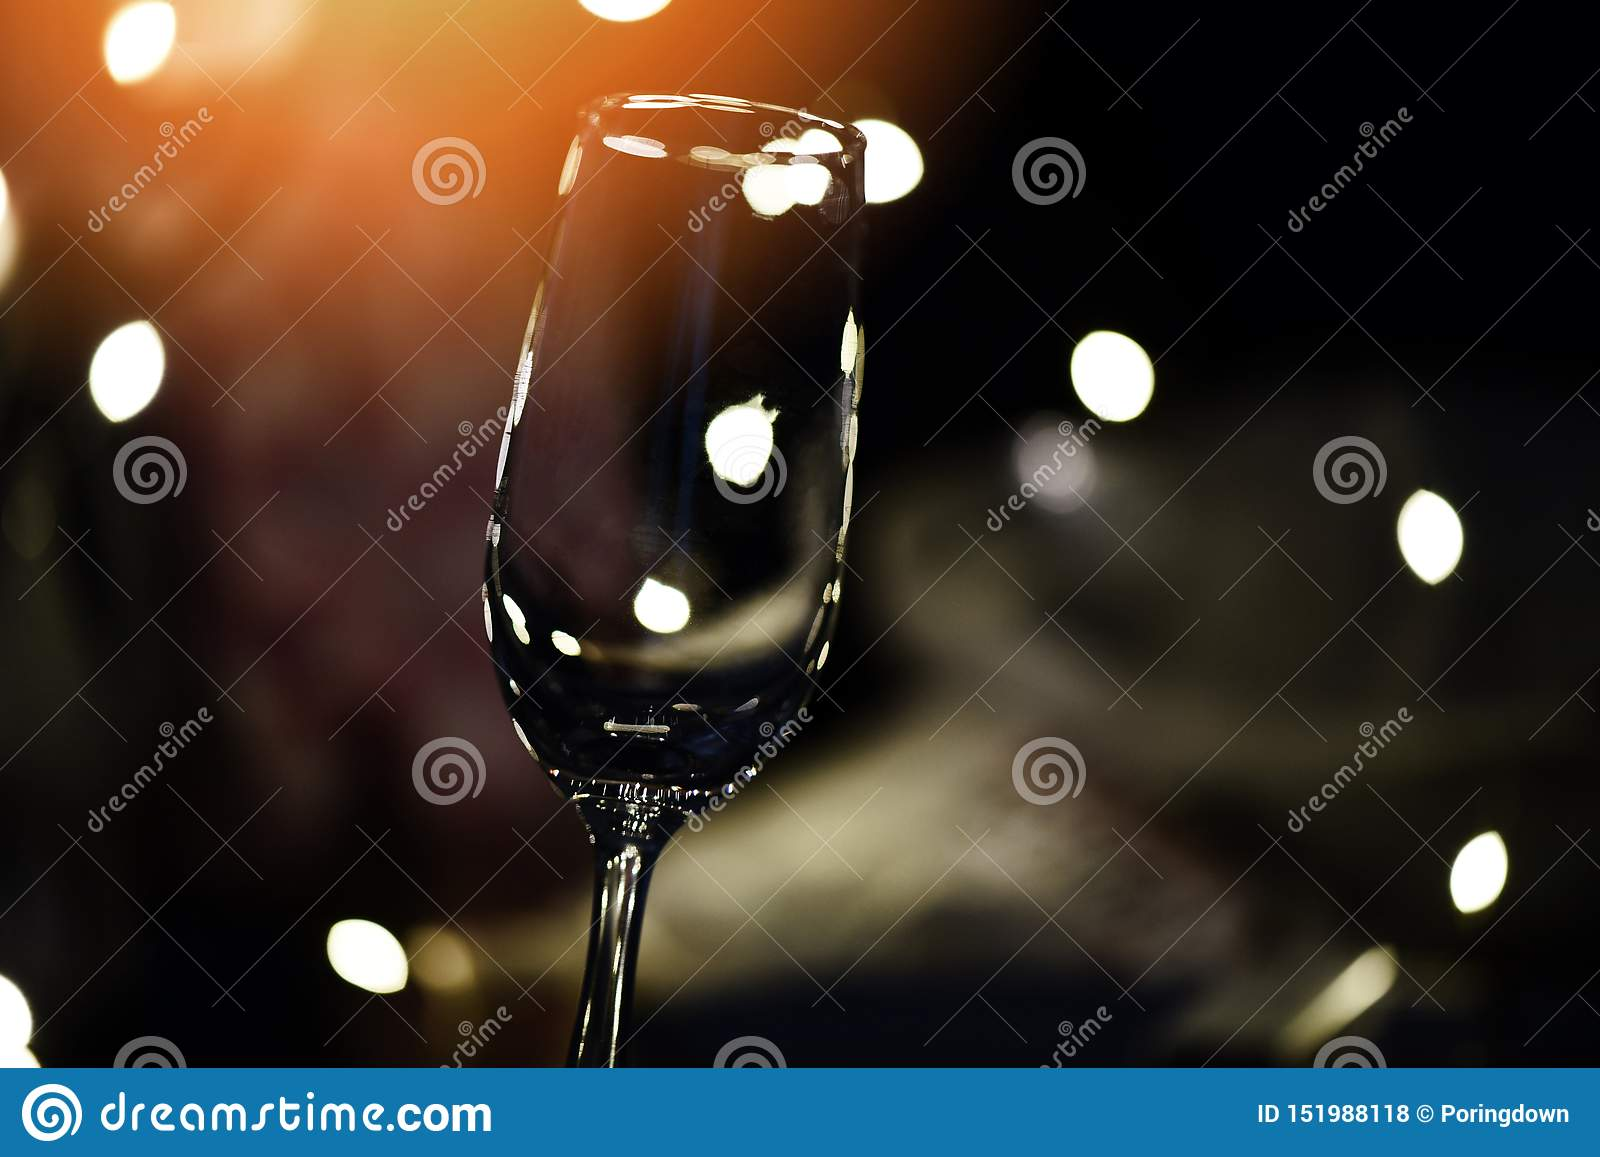 Champagne glass on table against blurred lights background - perspective of crystal clear wine glass for night party on the